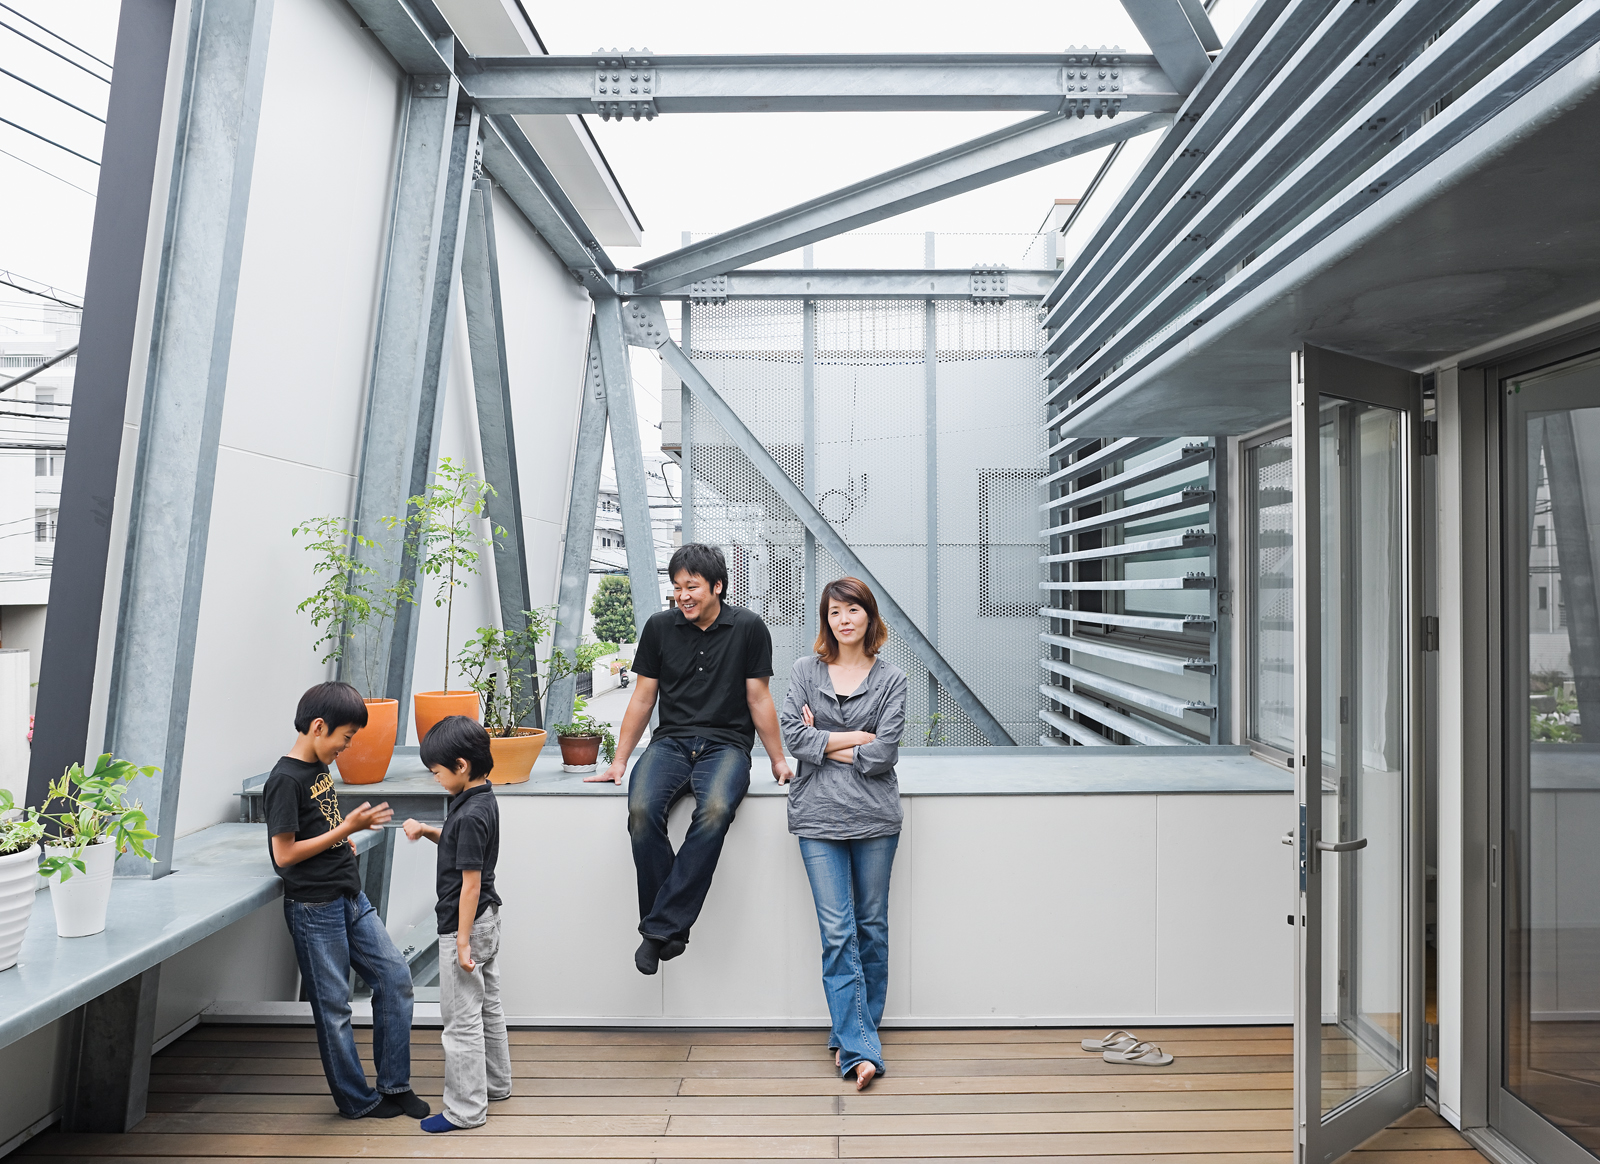 Slotted between the street-side enclosure and the living area is a breezy second-floor terrace. Brise soleil slats shade the interior. Yatabe's steel fabrication company created the robust, trusslike armature that extends from the house to support the dec